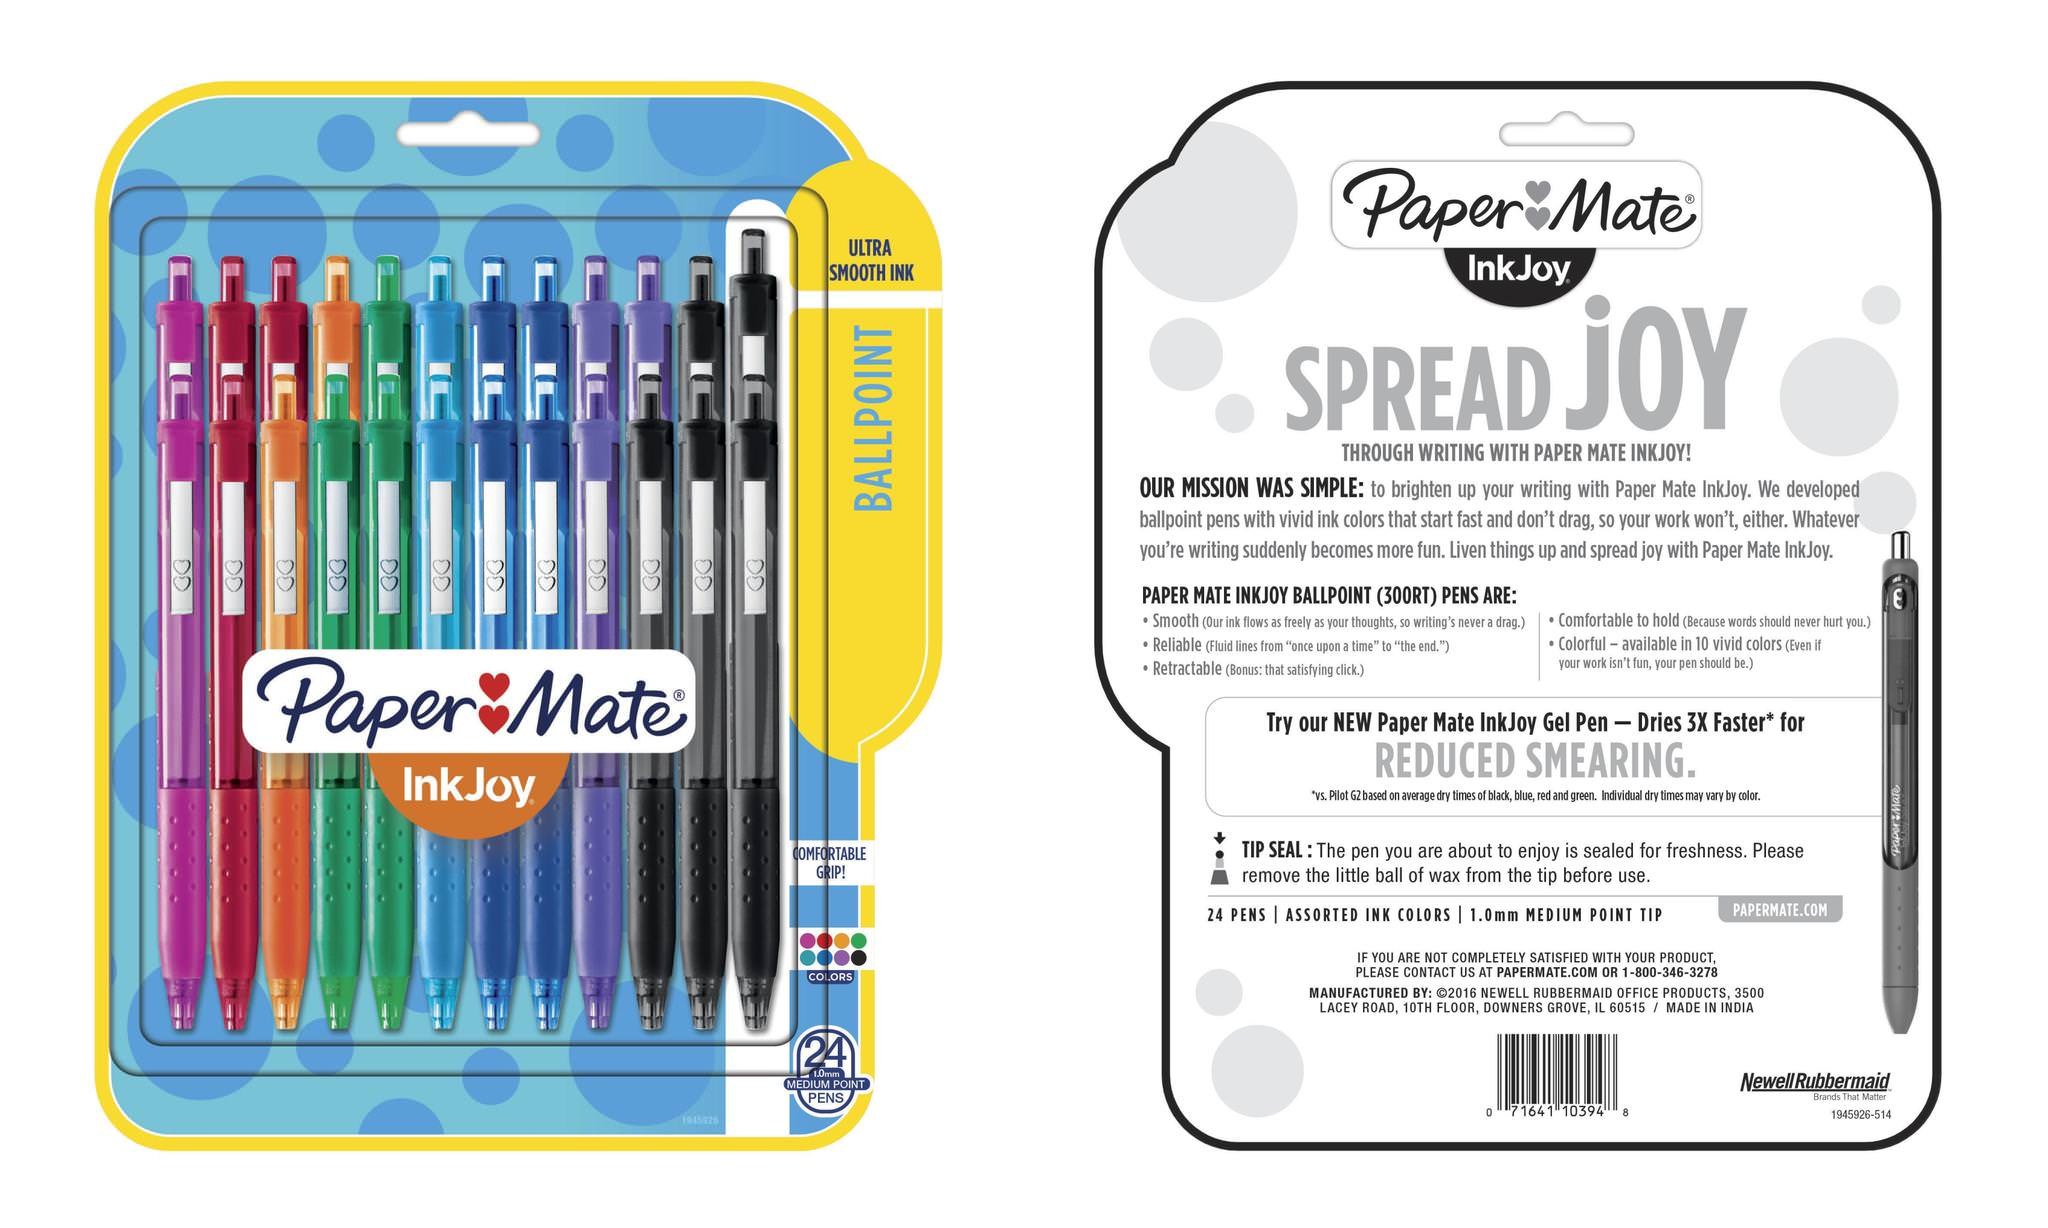 Paper Mate InkJoy 300 RT Retractable Ballpoint Pen, 1mm, Assorted, 24 Pack by Newell Brands